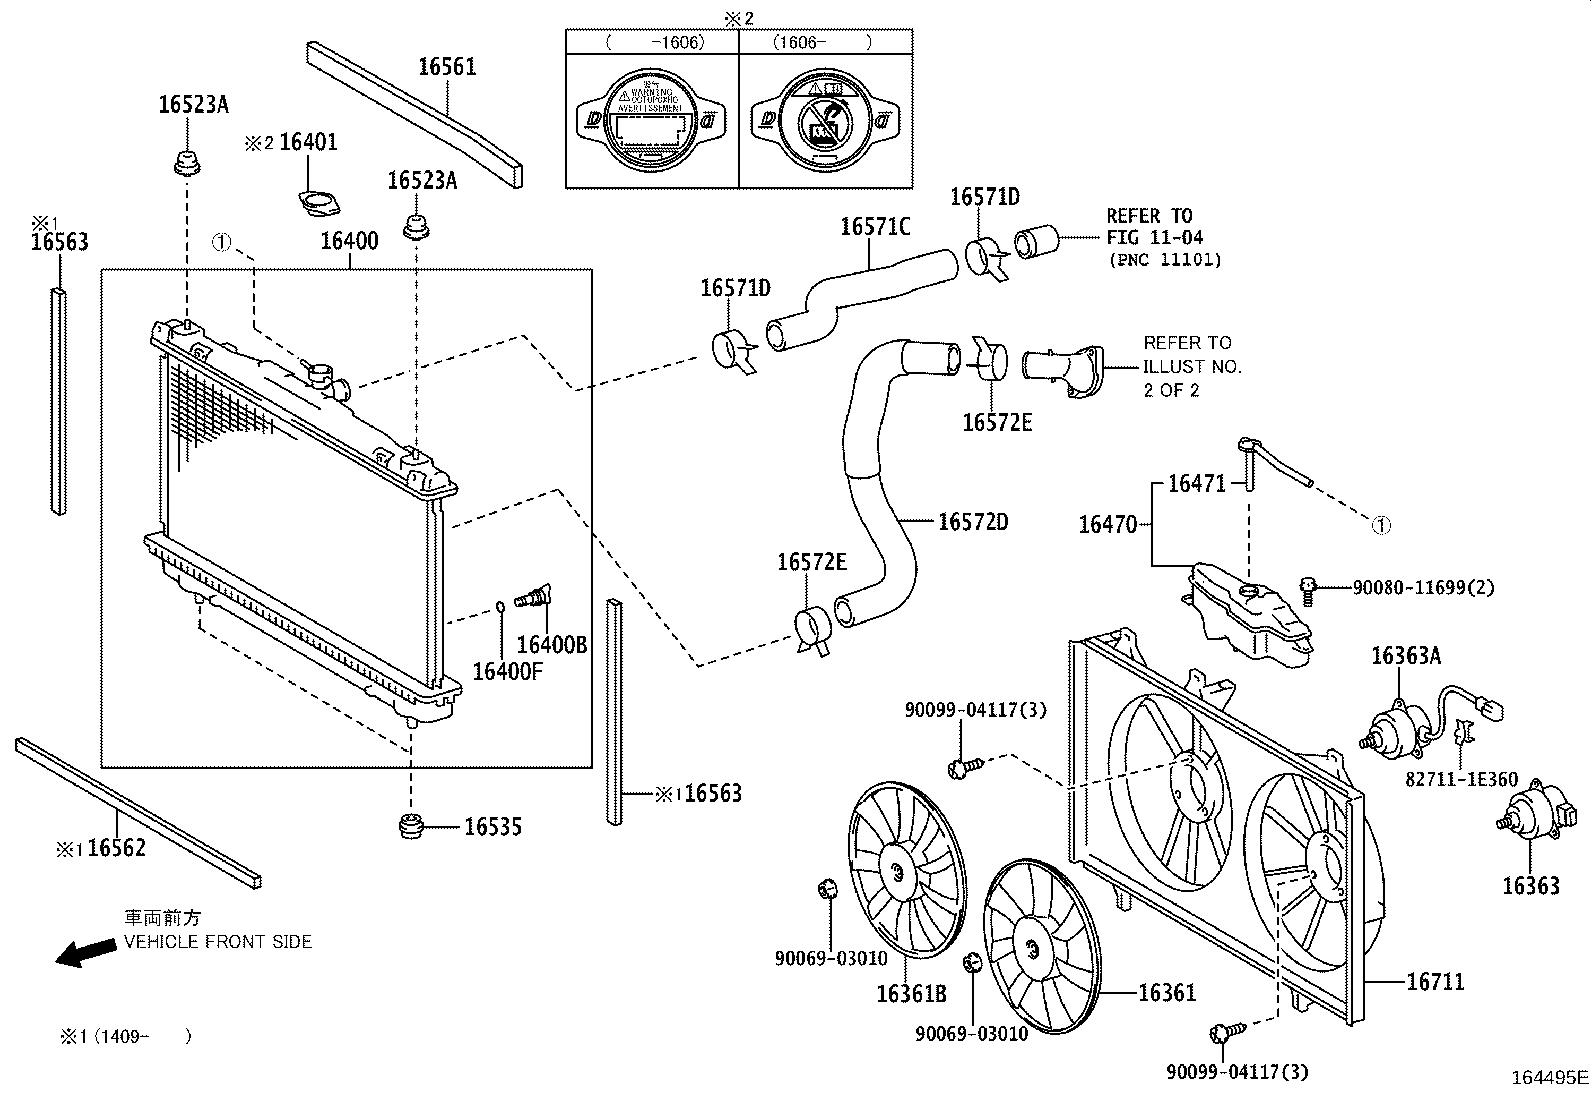 engine cooling system diagram 2013 toyota camry engine cooling system diagram #11